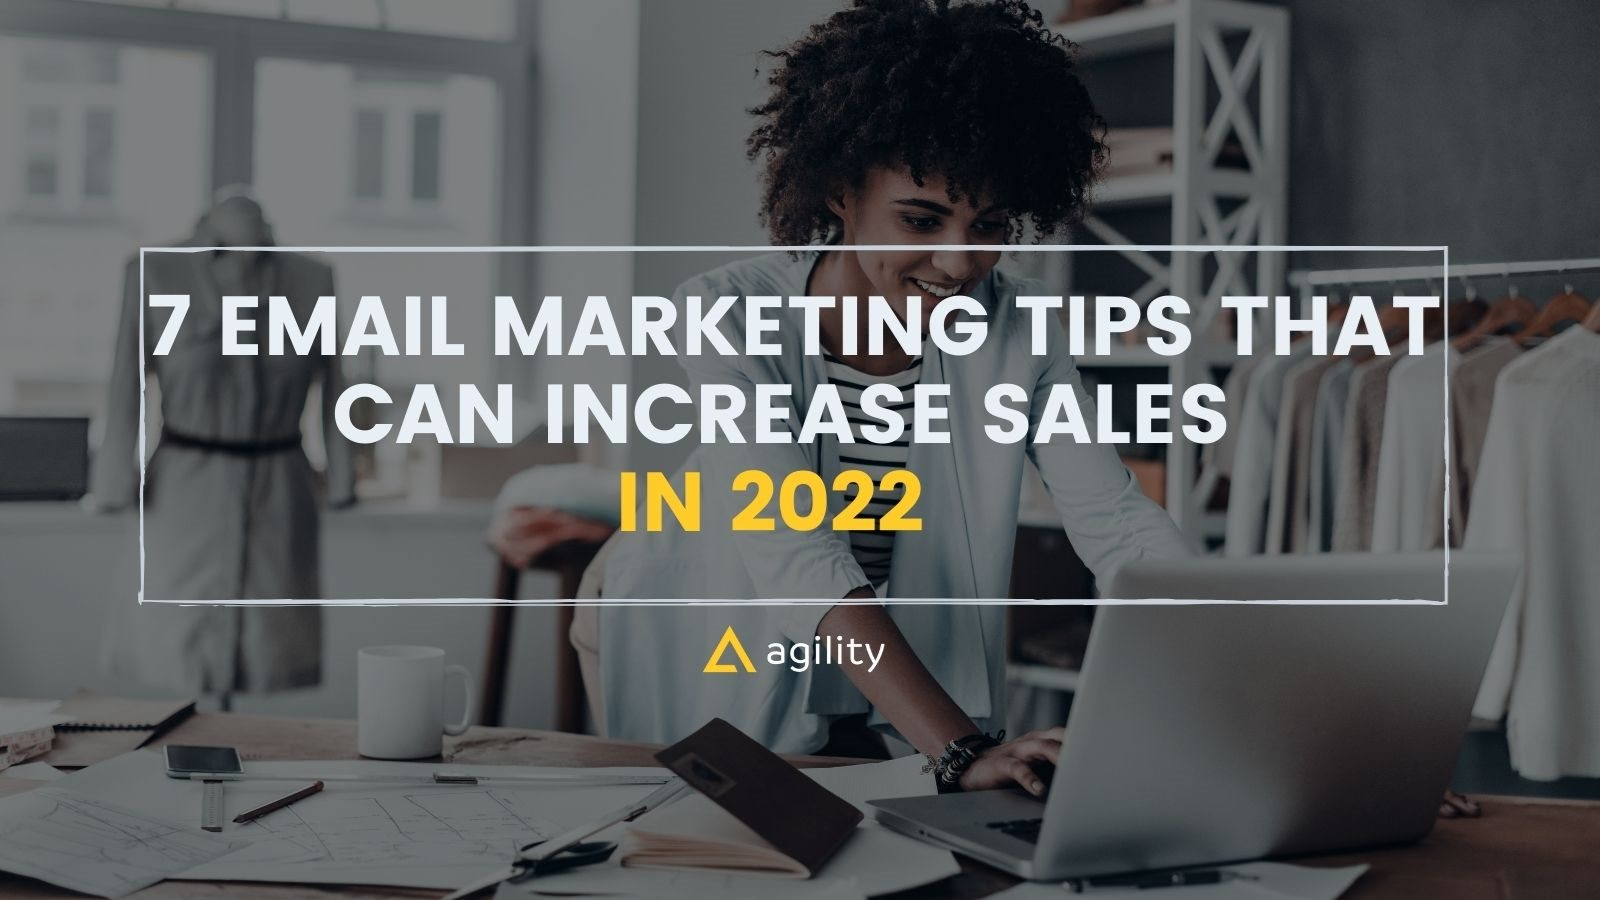 7 Email Marketing Tips That Can Increase Sales in 2022